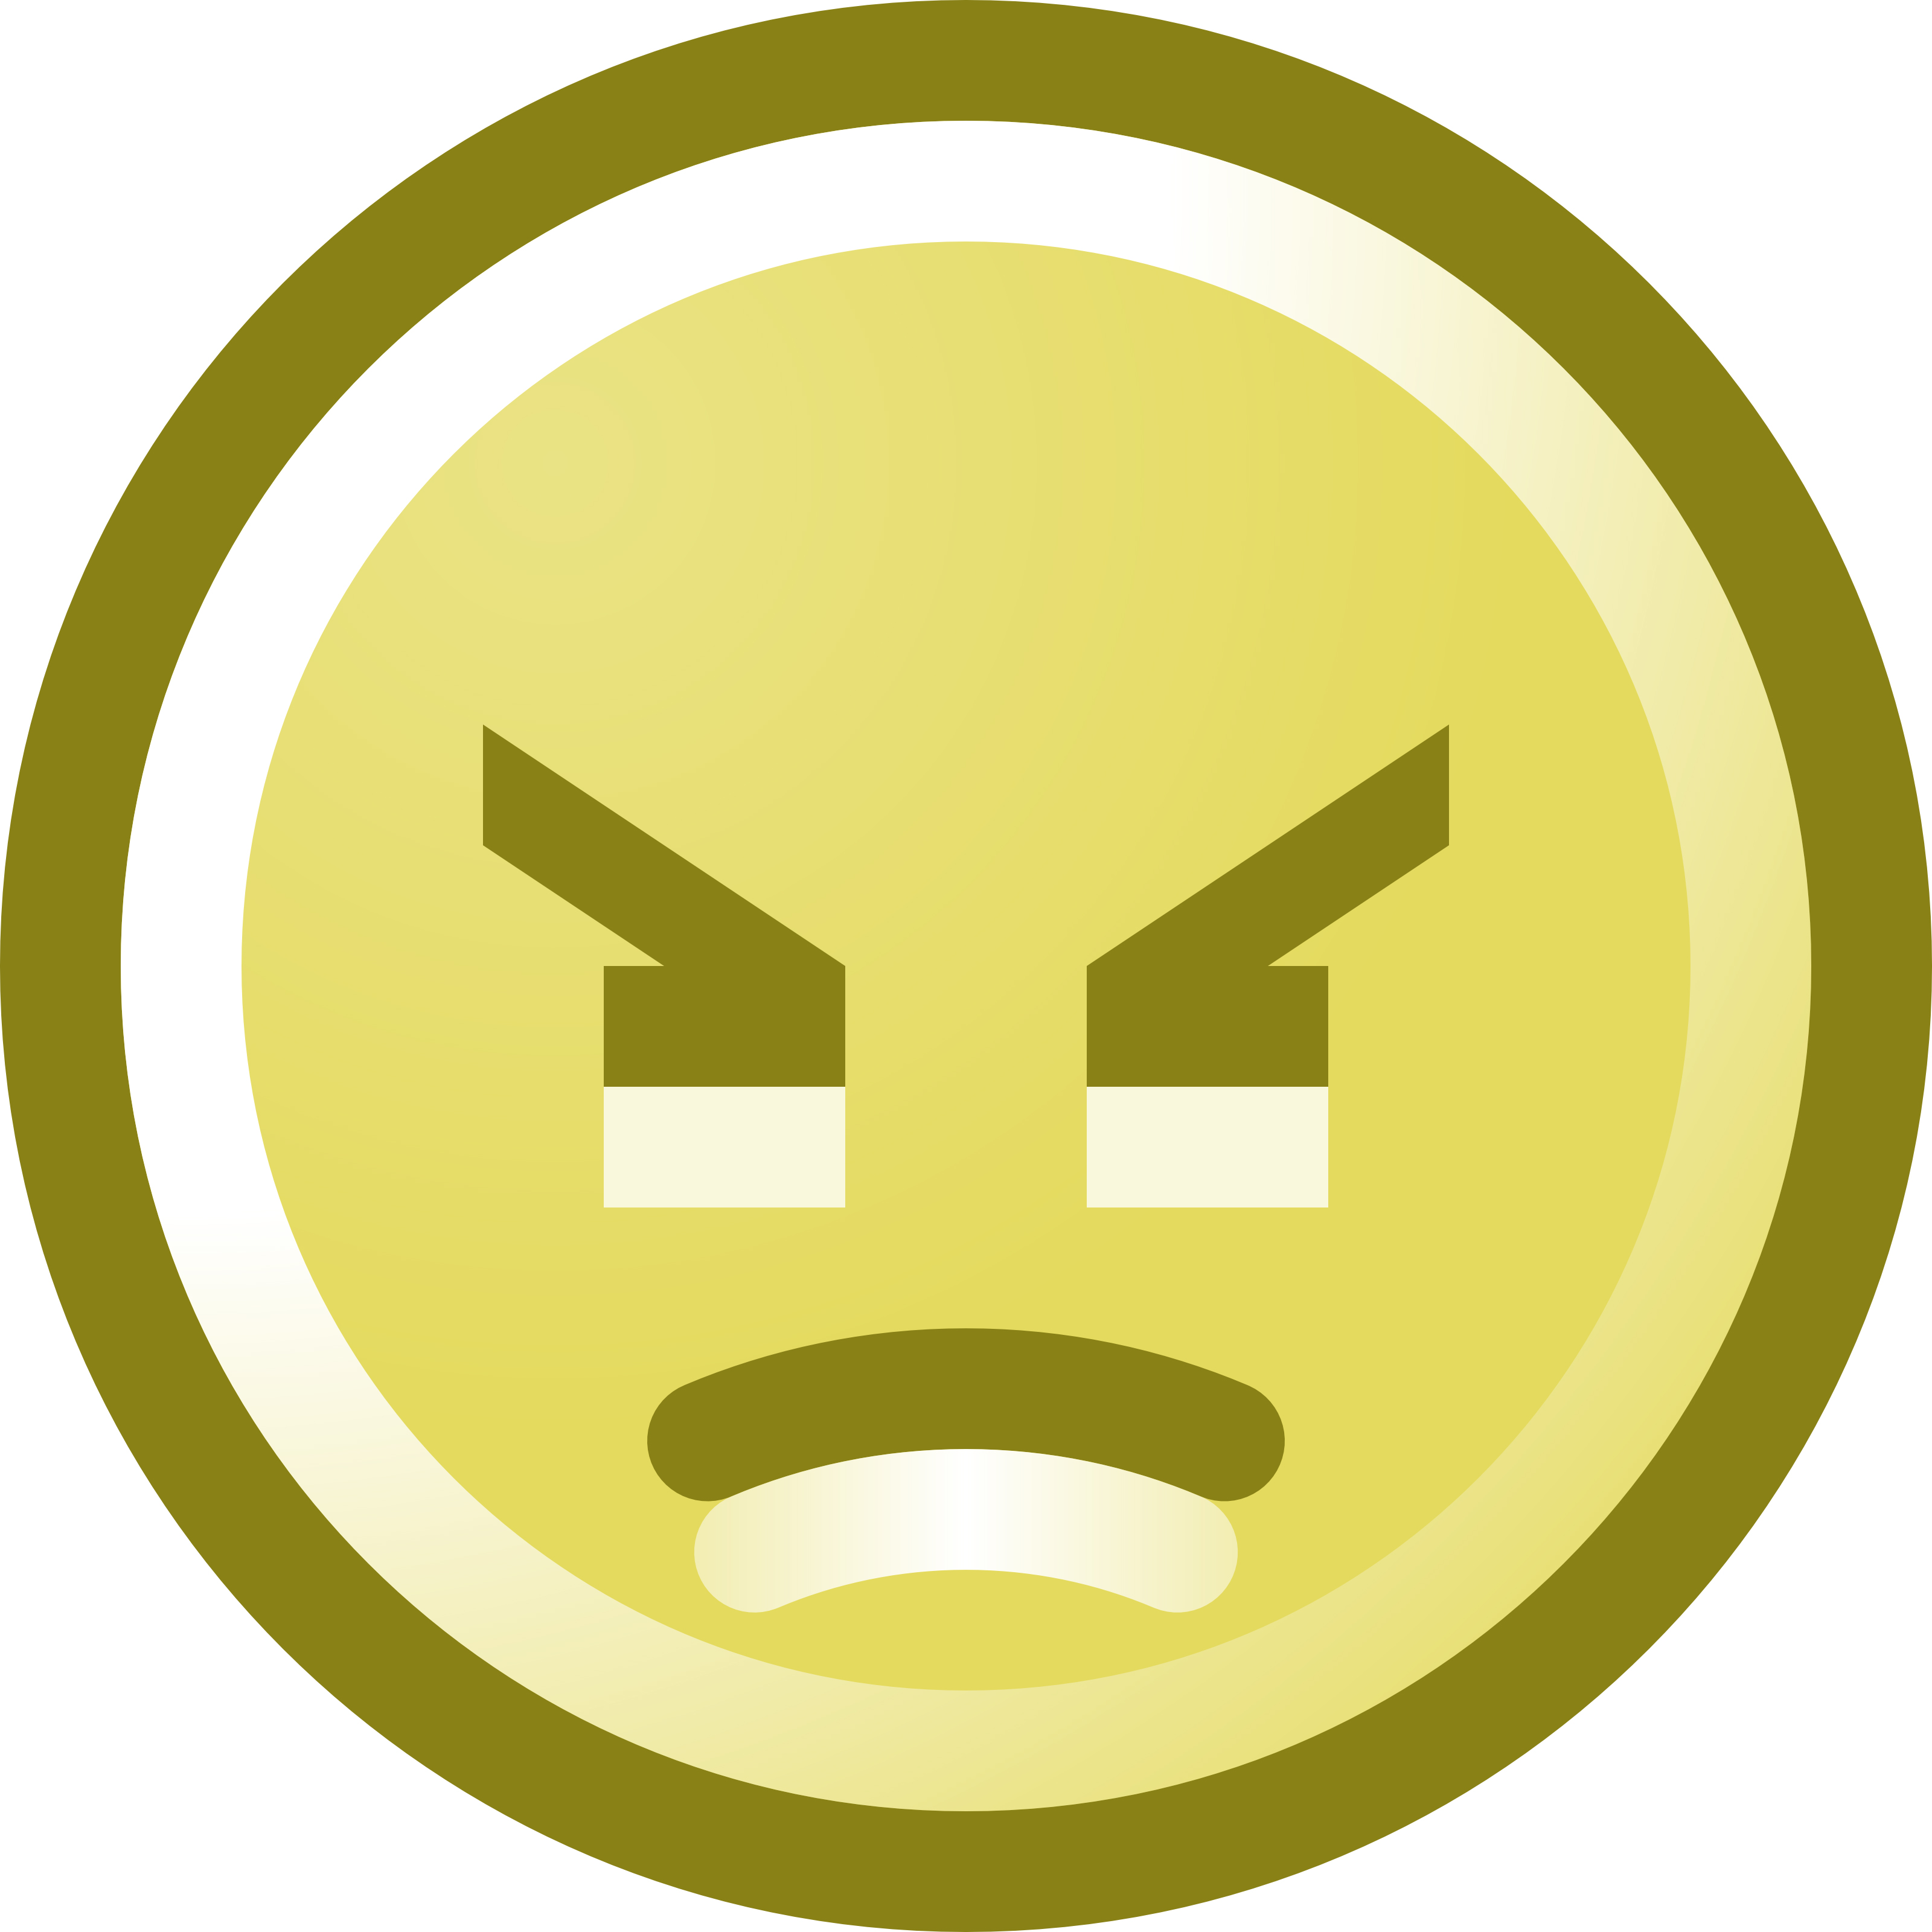 Free Stubborn Cliparts Face, Download Free Clip Art, Free.